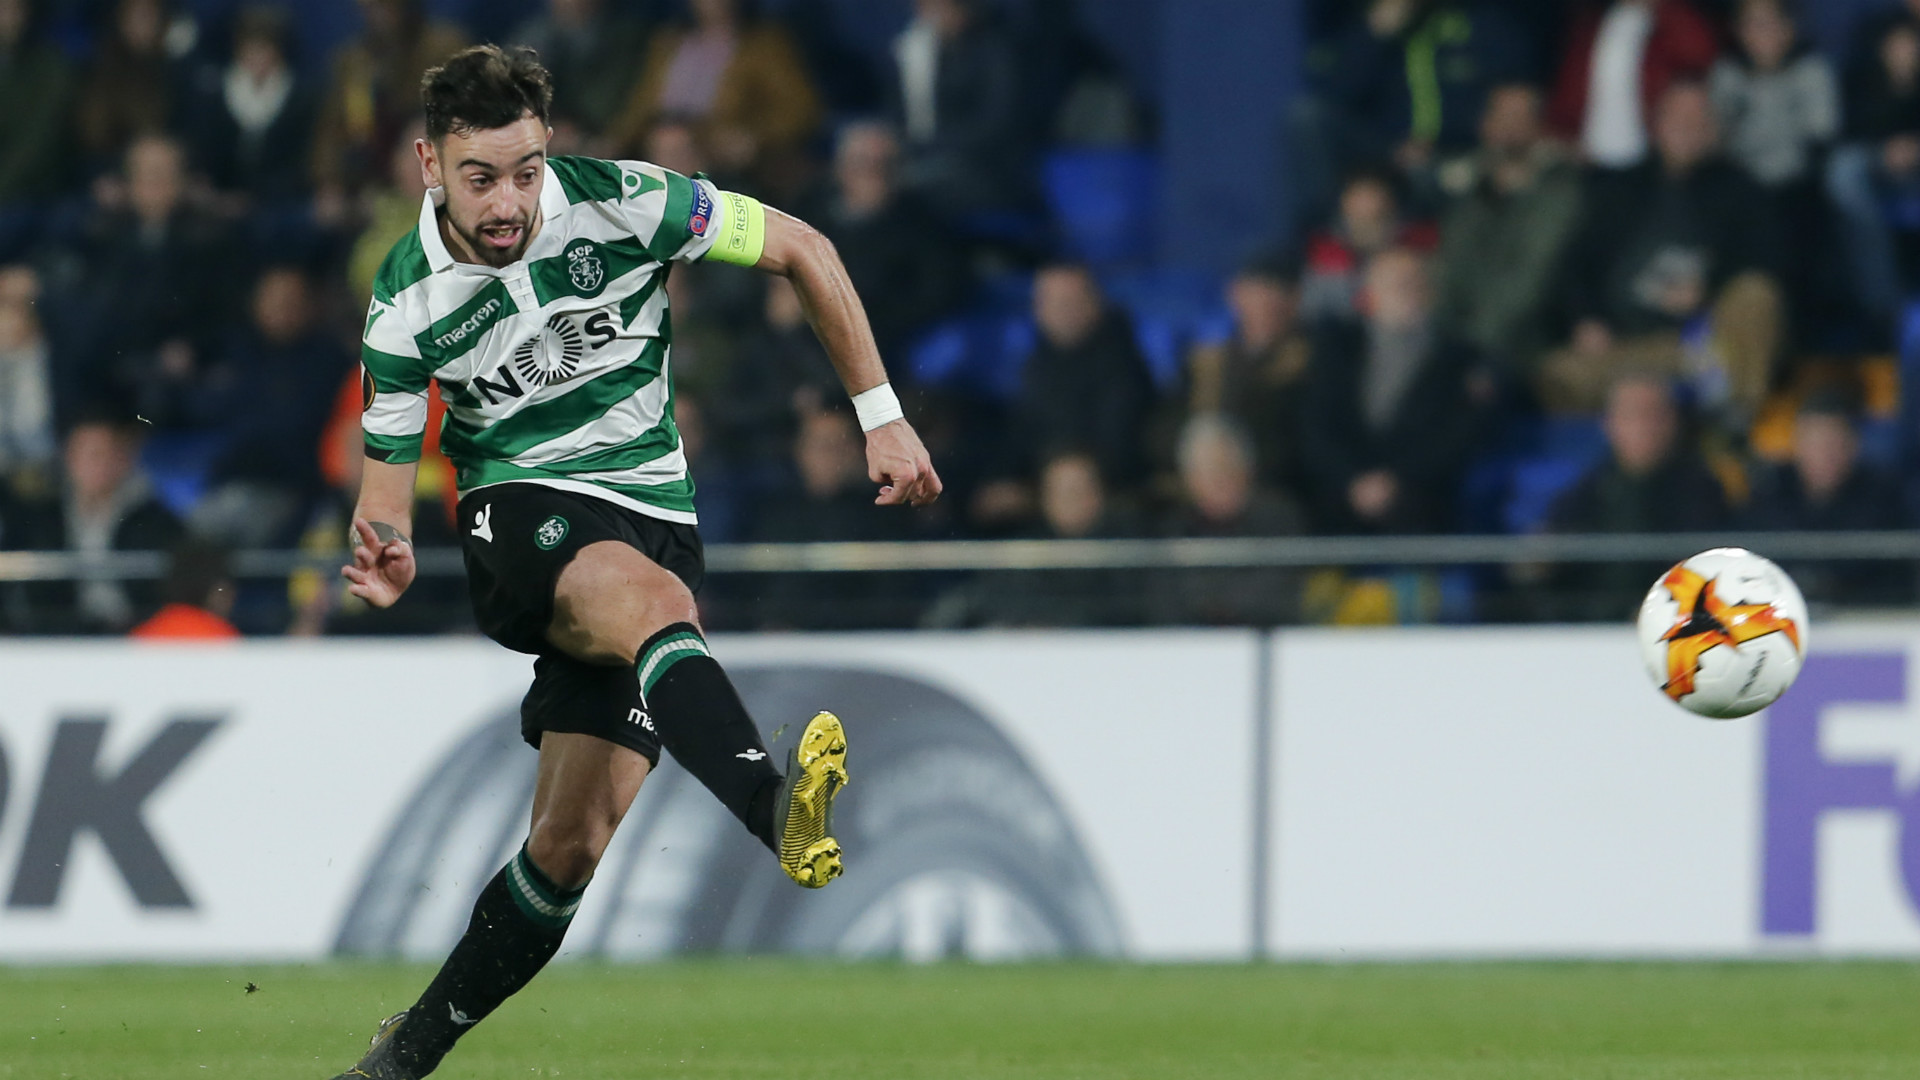 'I have dreams to fulfil' - Man Utd & Spurs-linked Fernandes speaks out on Sporting future